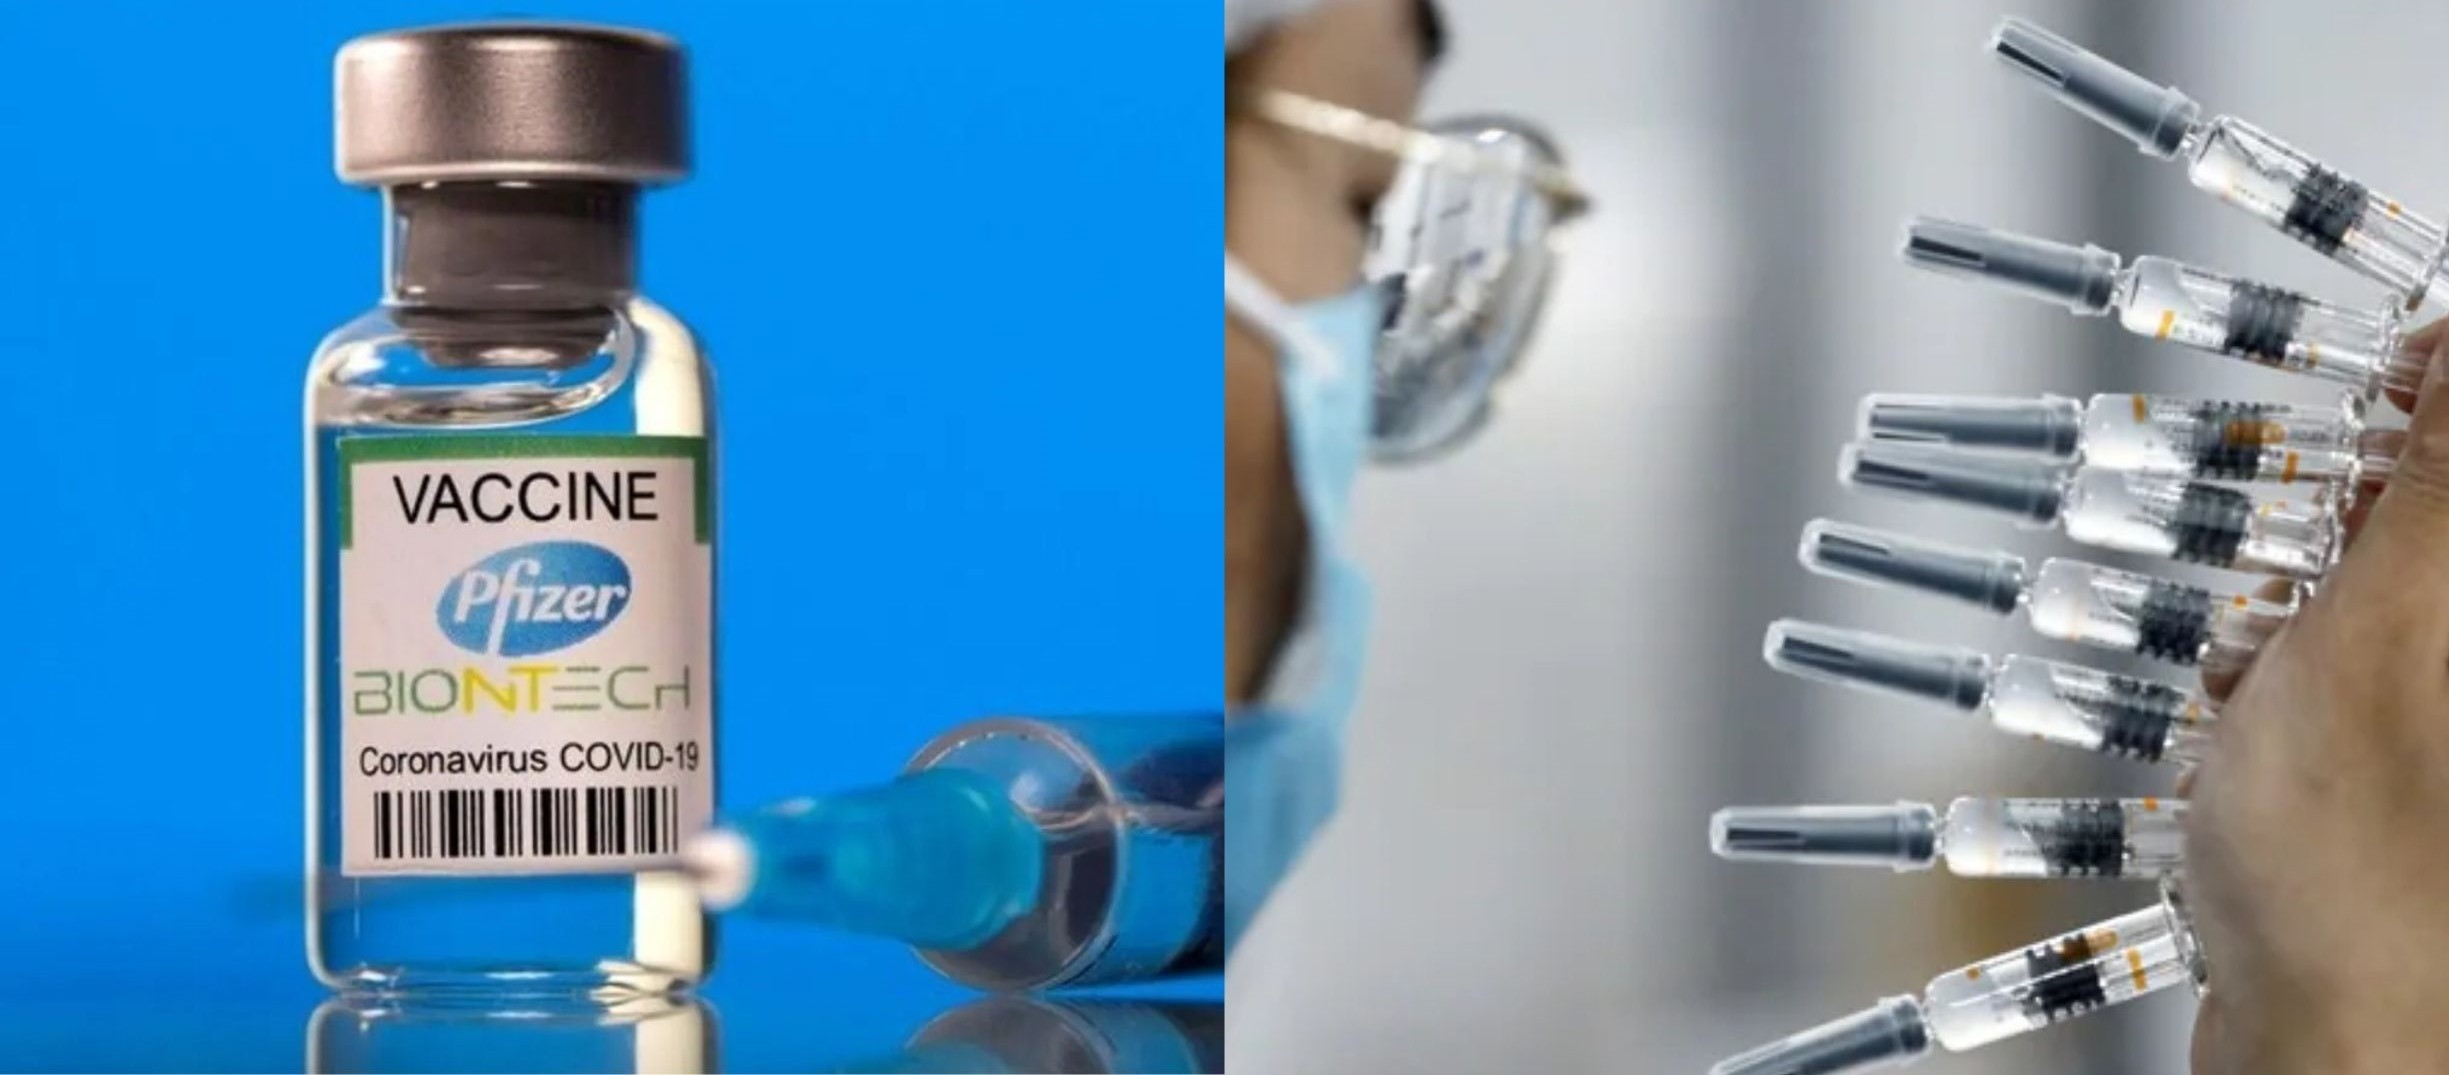 Covid-19: Pfizer Booster Shots To Be Given To Those Fully Vaccinated With Sinovac